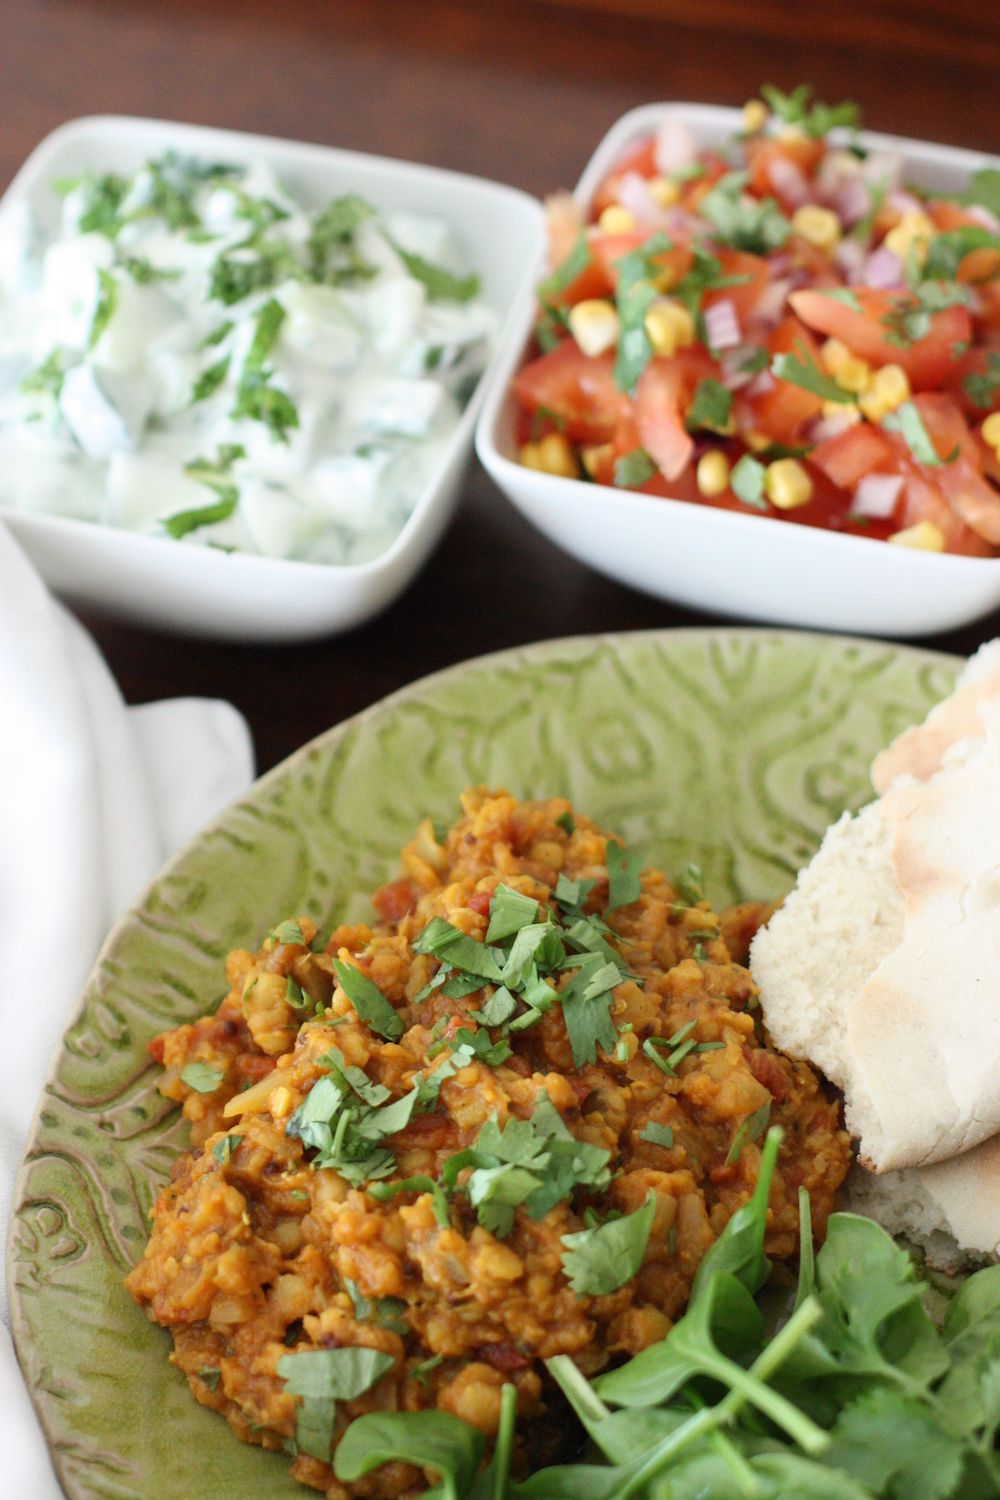 Mixed Lentil Dhal with side salads